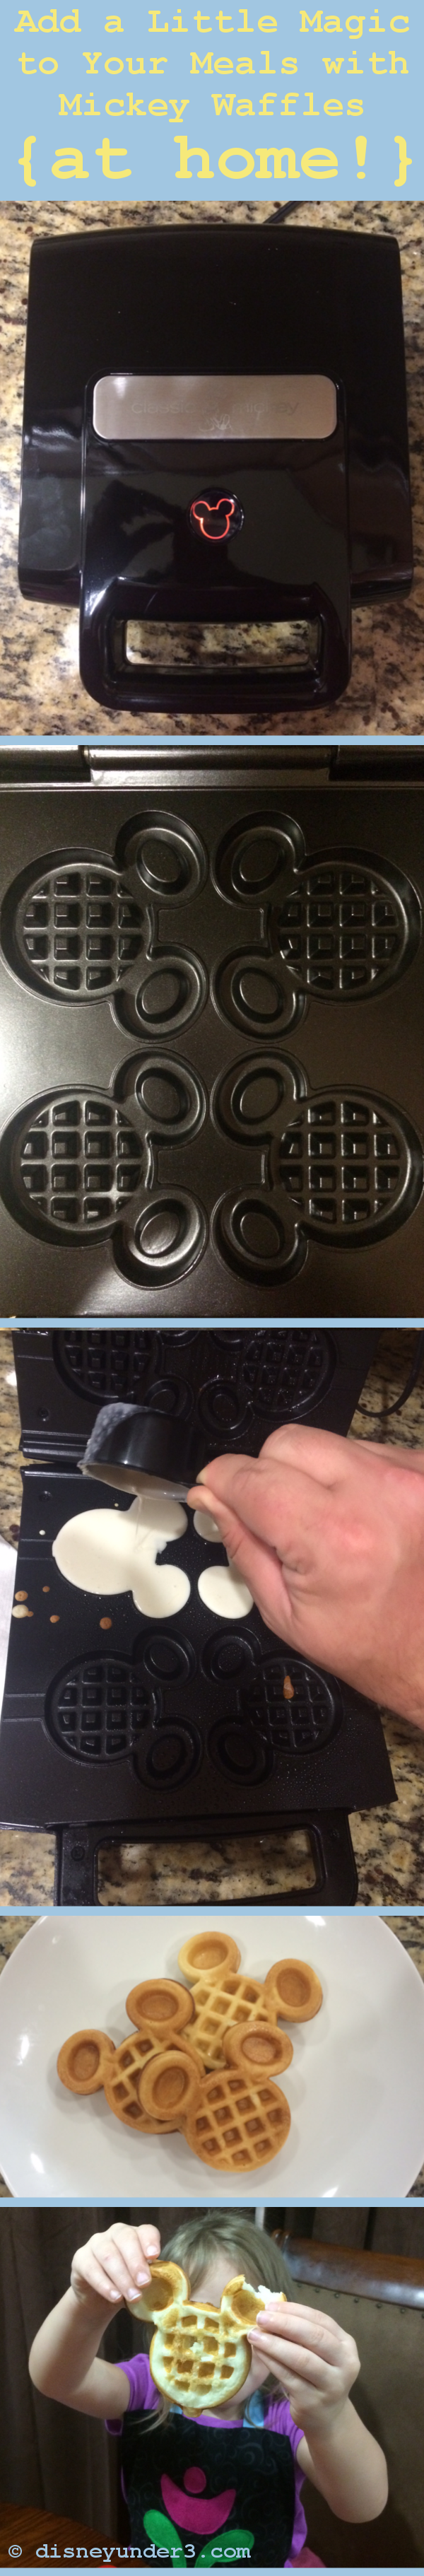 Mickey Mouse Waffles at Home